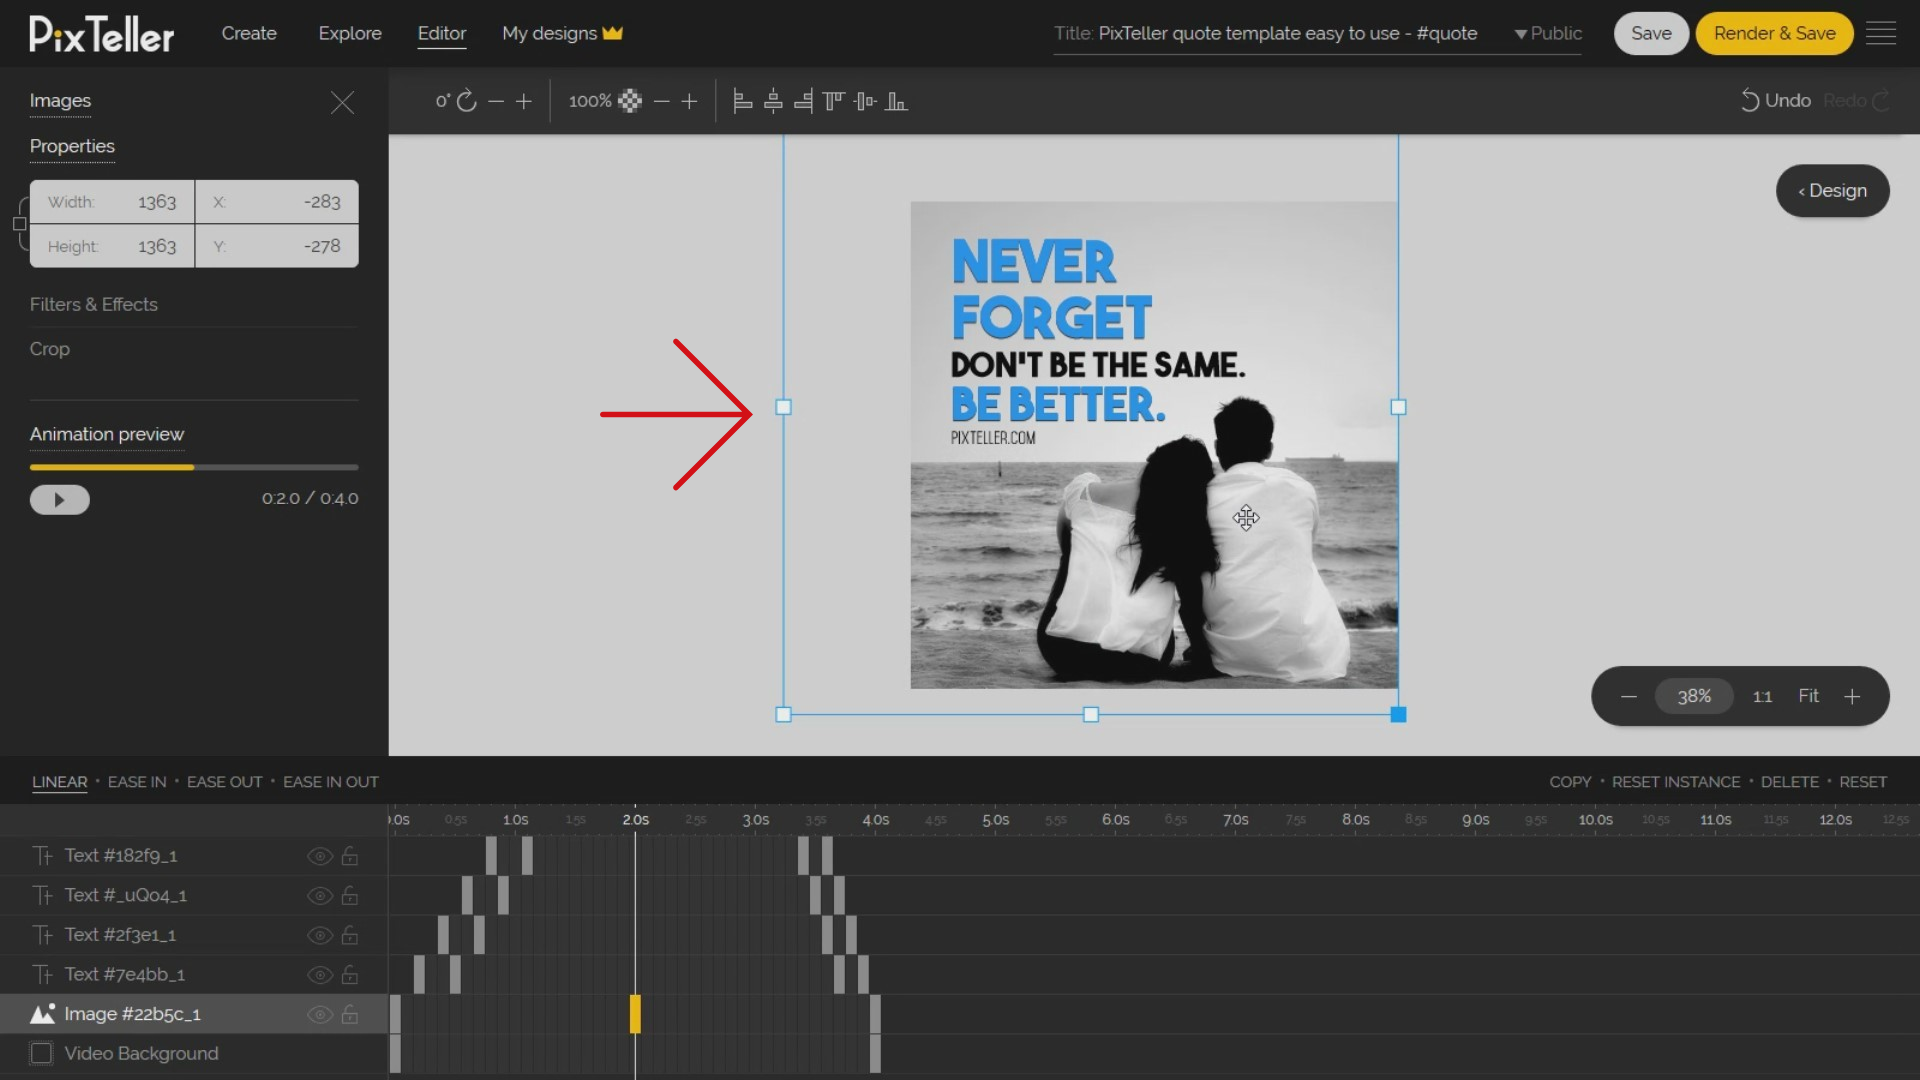 How to scale and reposition the background image in Animation Mode